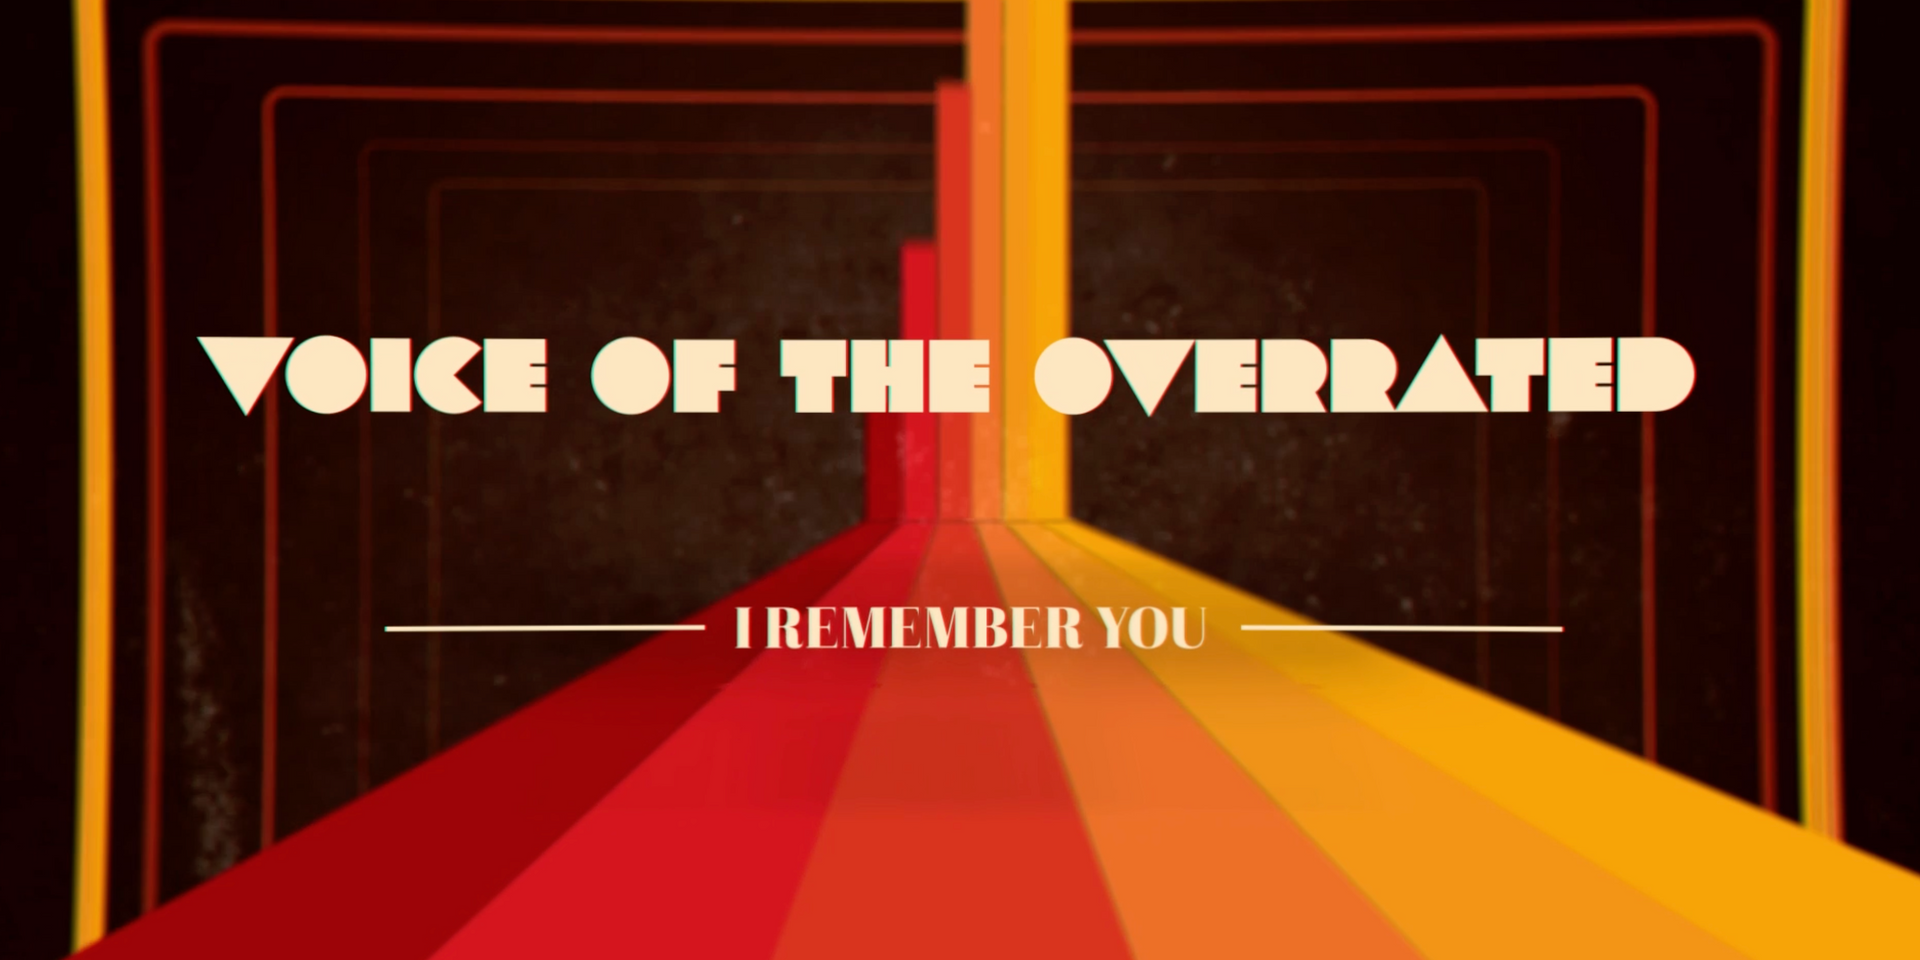 I Remember You: Voice of the Overrated Promo